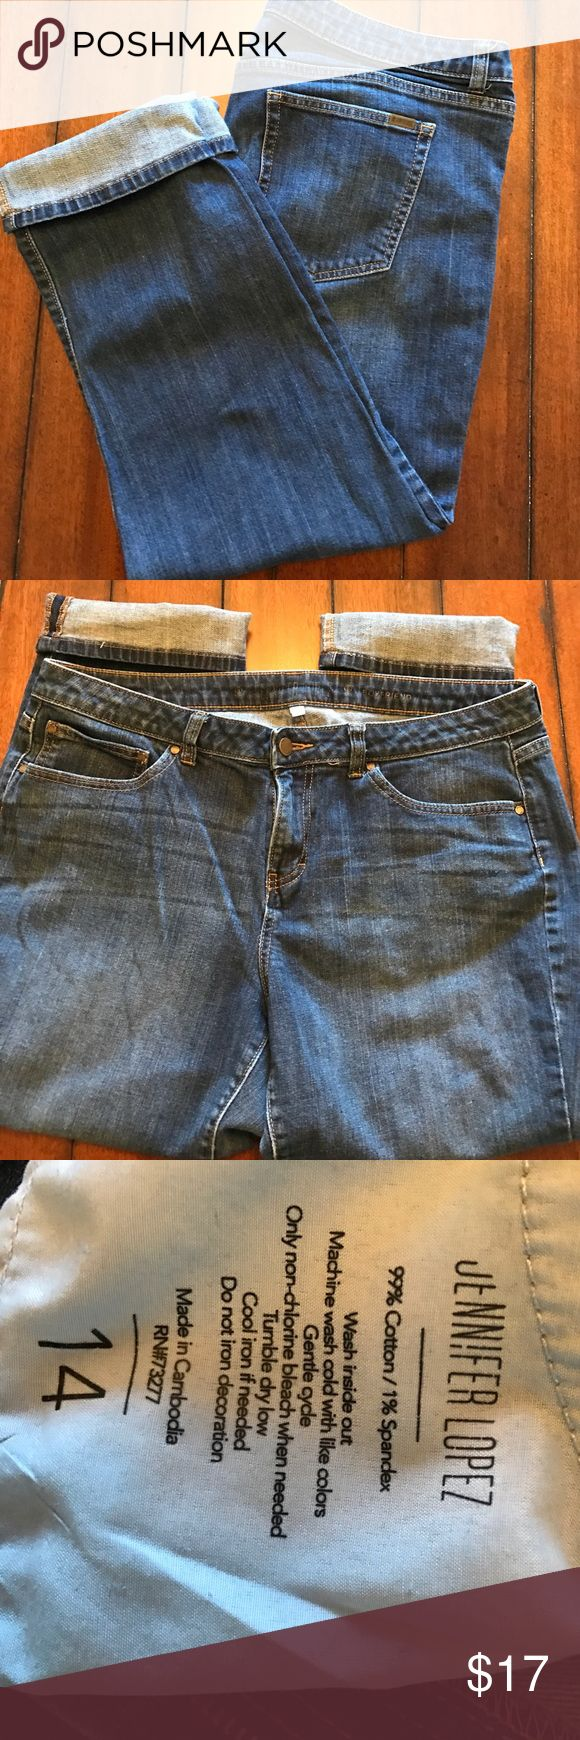 Jennifer Lopez Boyfriend Crop Jeans Dark wash, cropped jeans. Would look super cute with a pair of flats or sandals. In excellent condition from a clean, smoke free home. Jennifer Lopez Jeans Ankle & Cropped